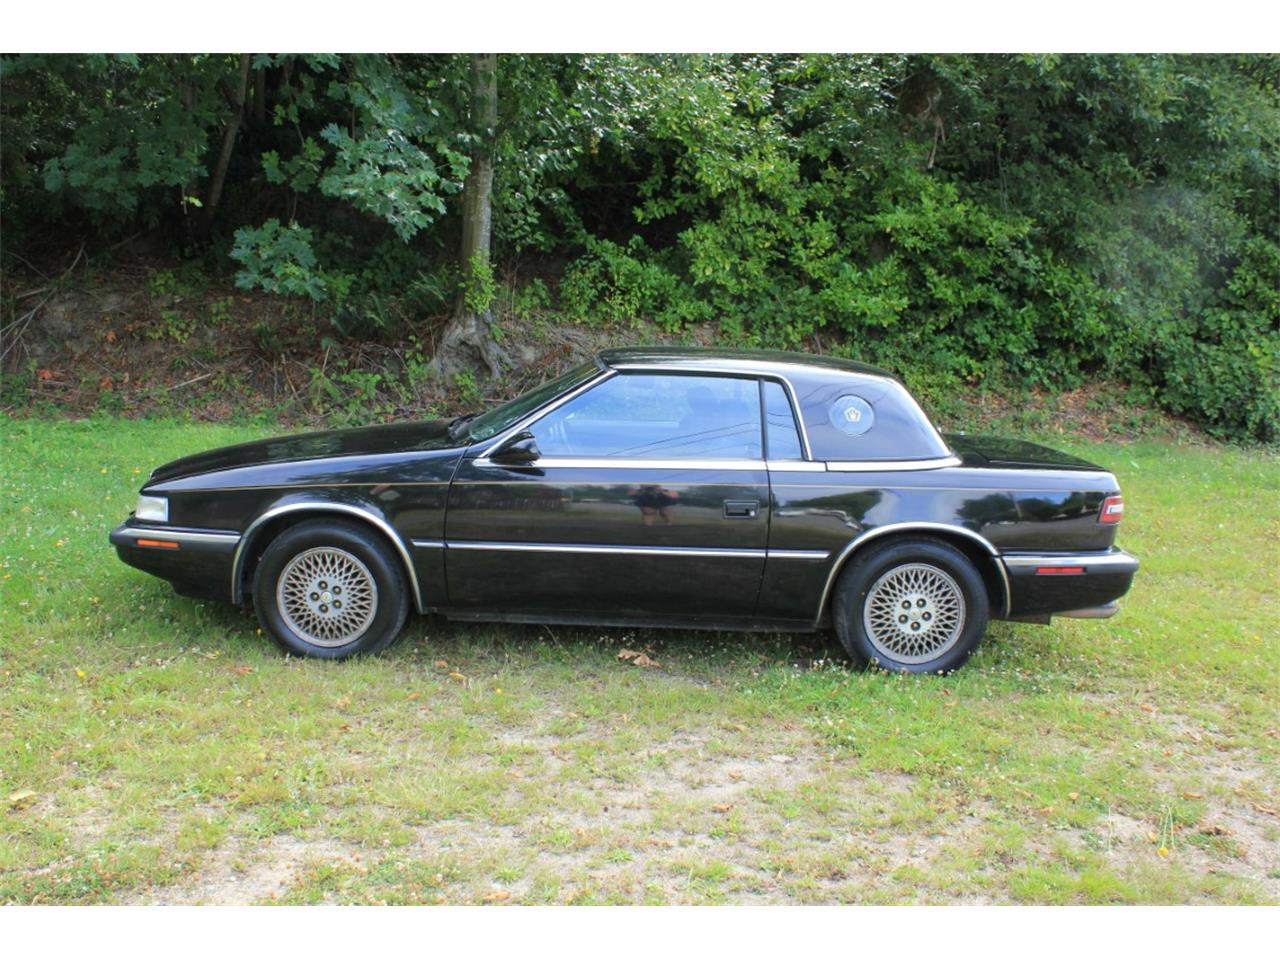 Large Picture of '90 Chrysler TC by Maserati located in TACOMA Washington - QQBD